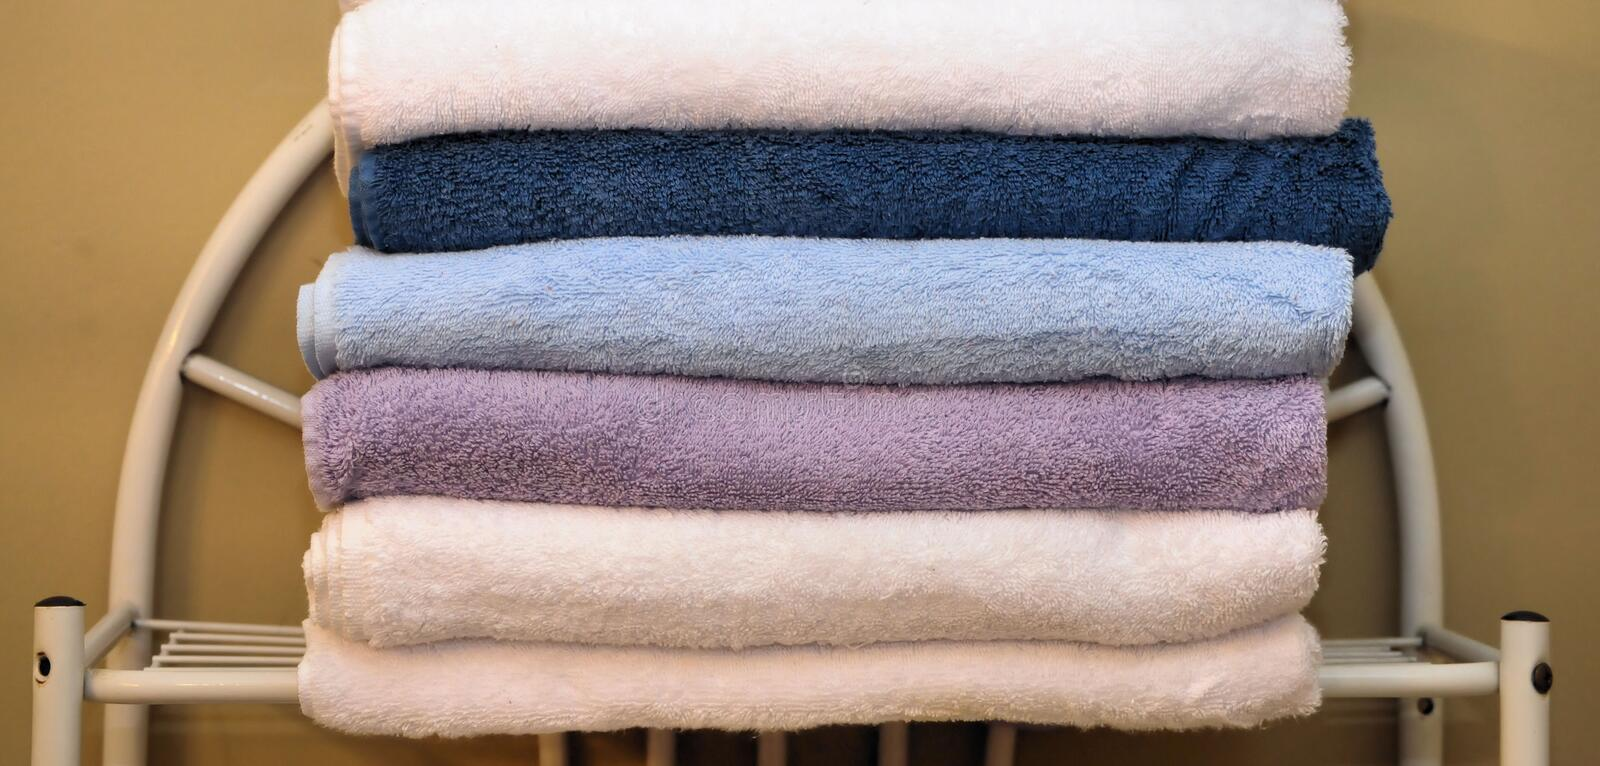 Download Folded towels on rack stock image. Image of cloth, drying - 7268643